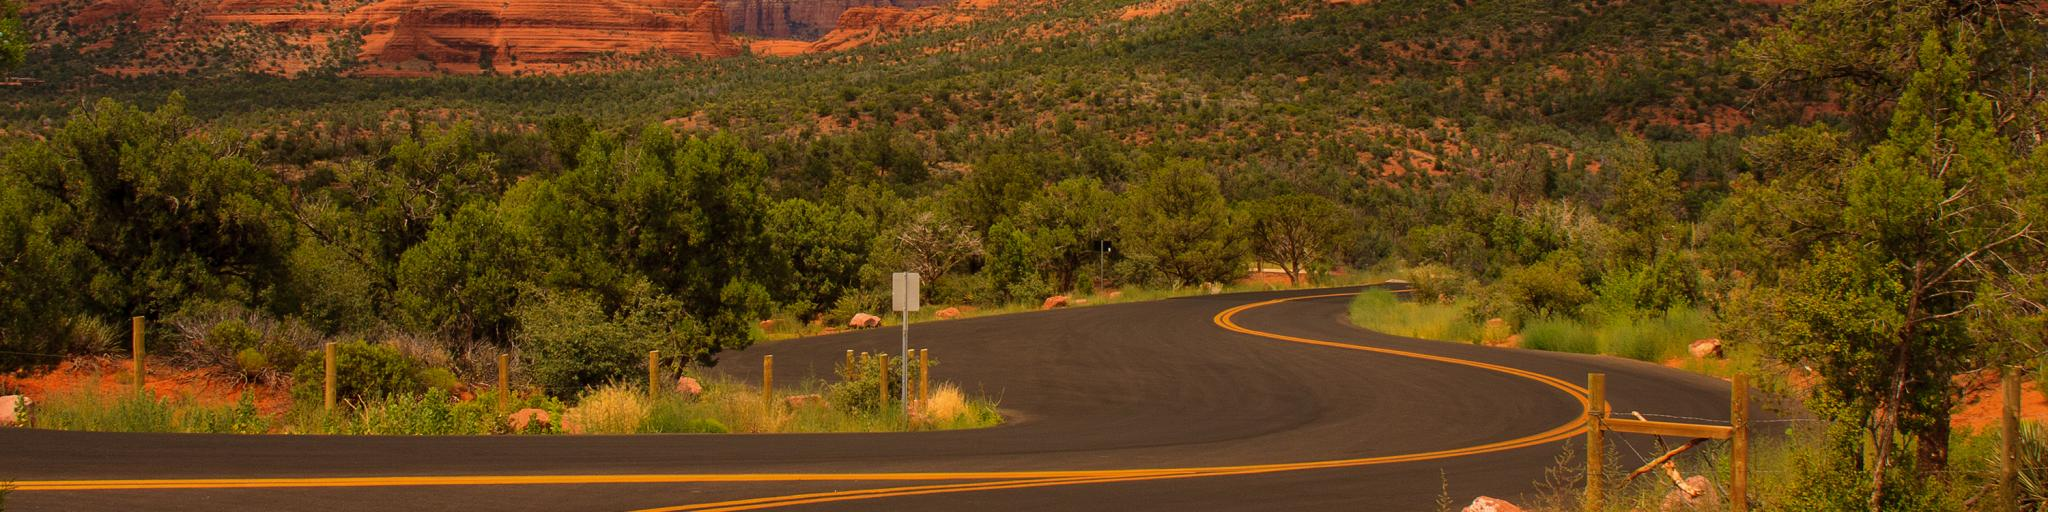 An image of an empty road in Sedona, Arizona during sunset with trees and a view of mountains.